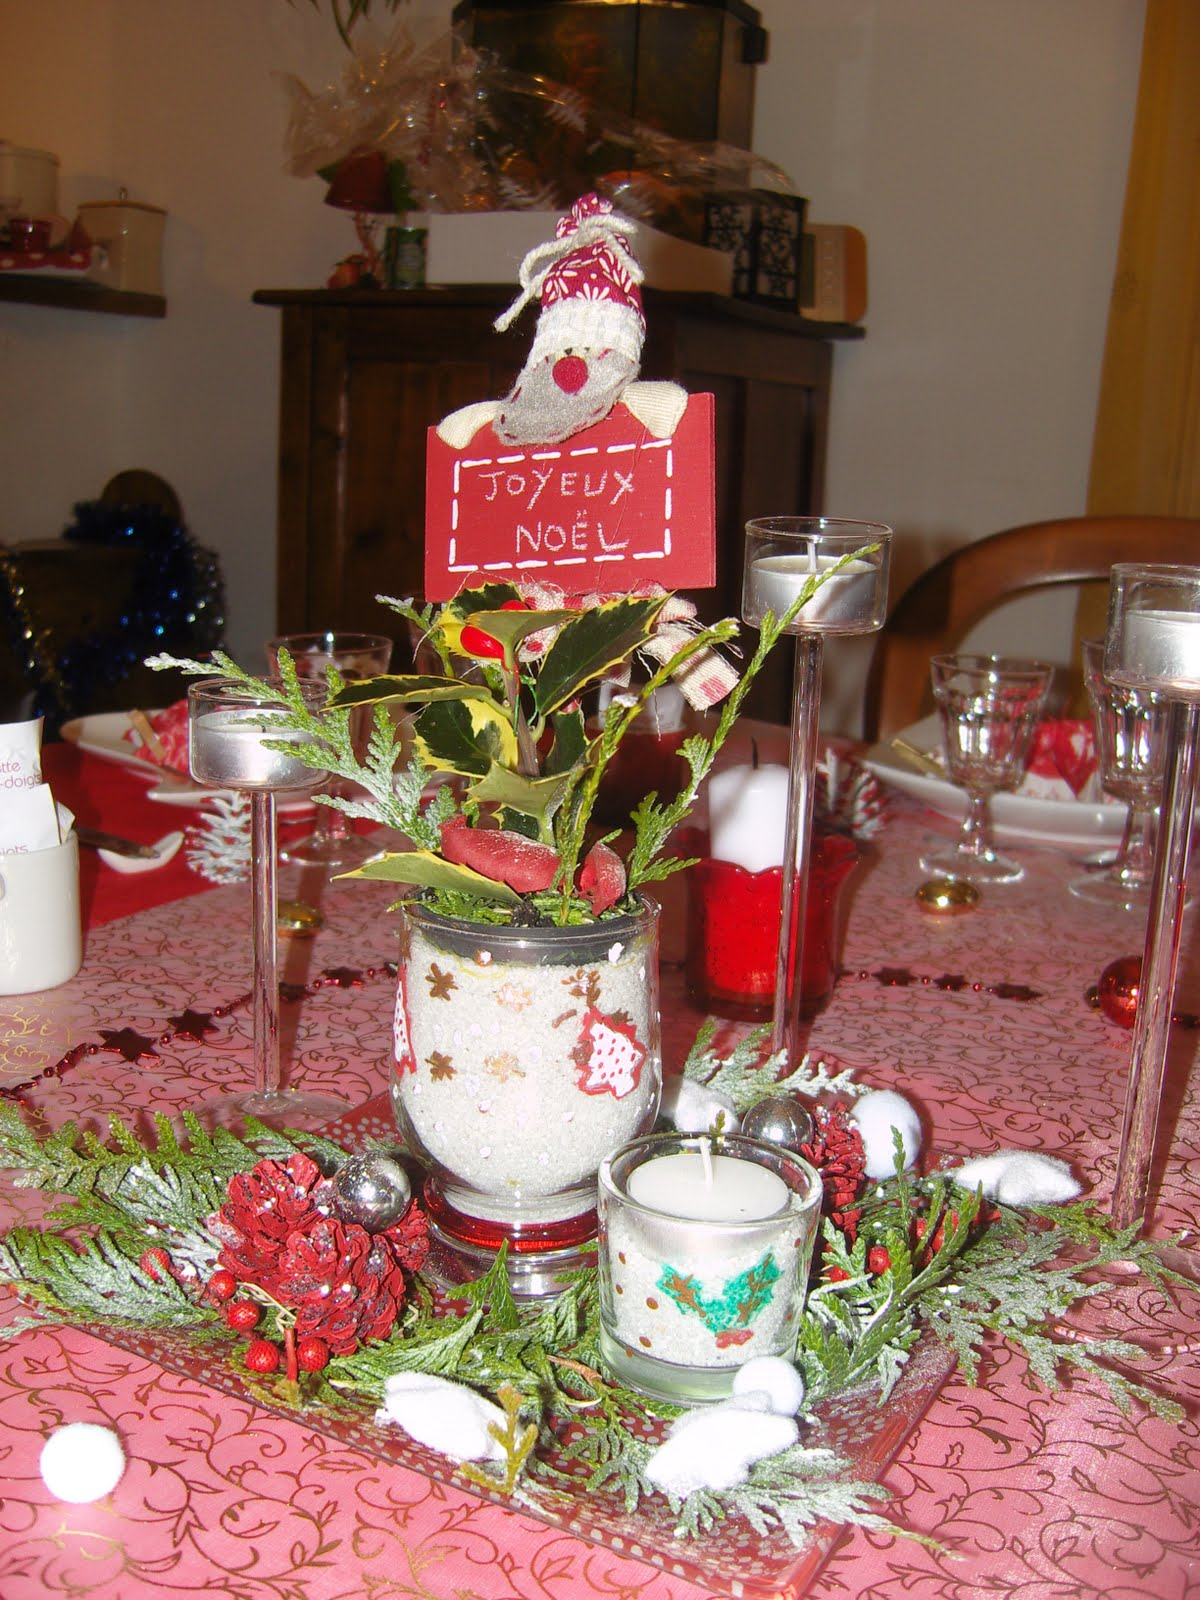 Dans la maison de s verine d coration de table du 24 12 10 for Decoration lumignon 8 decembre